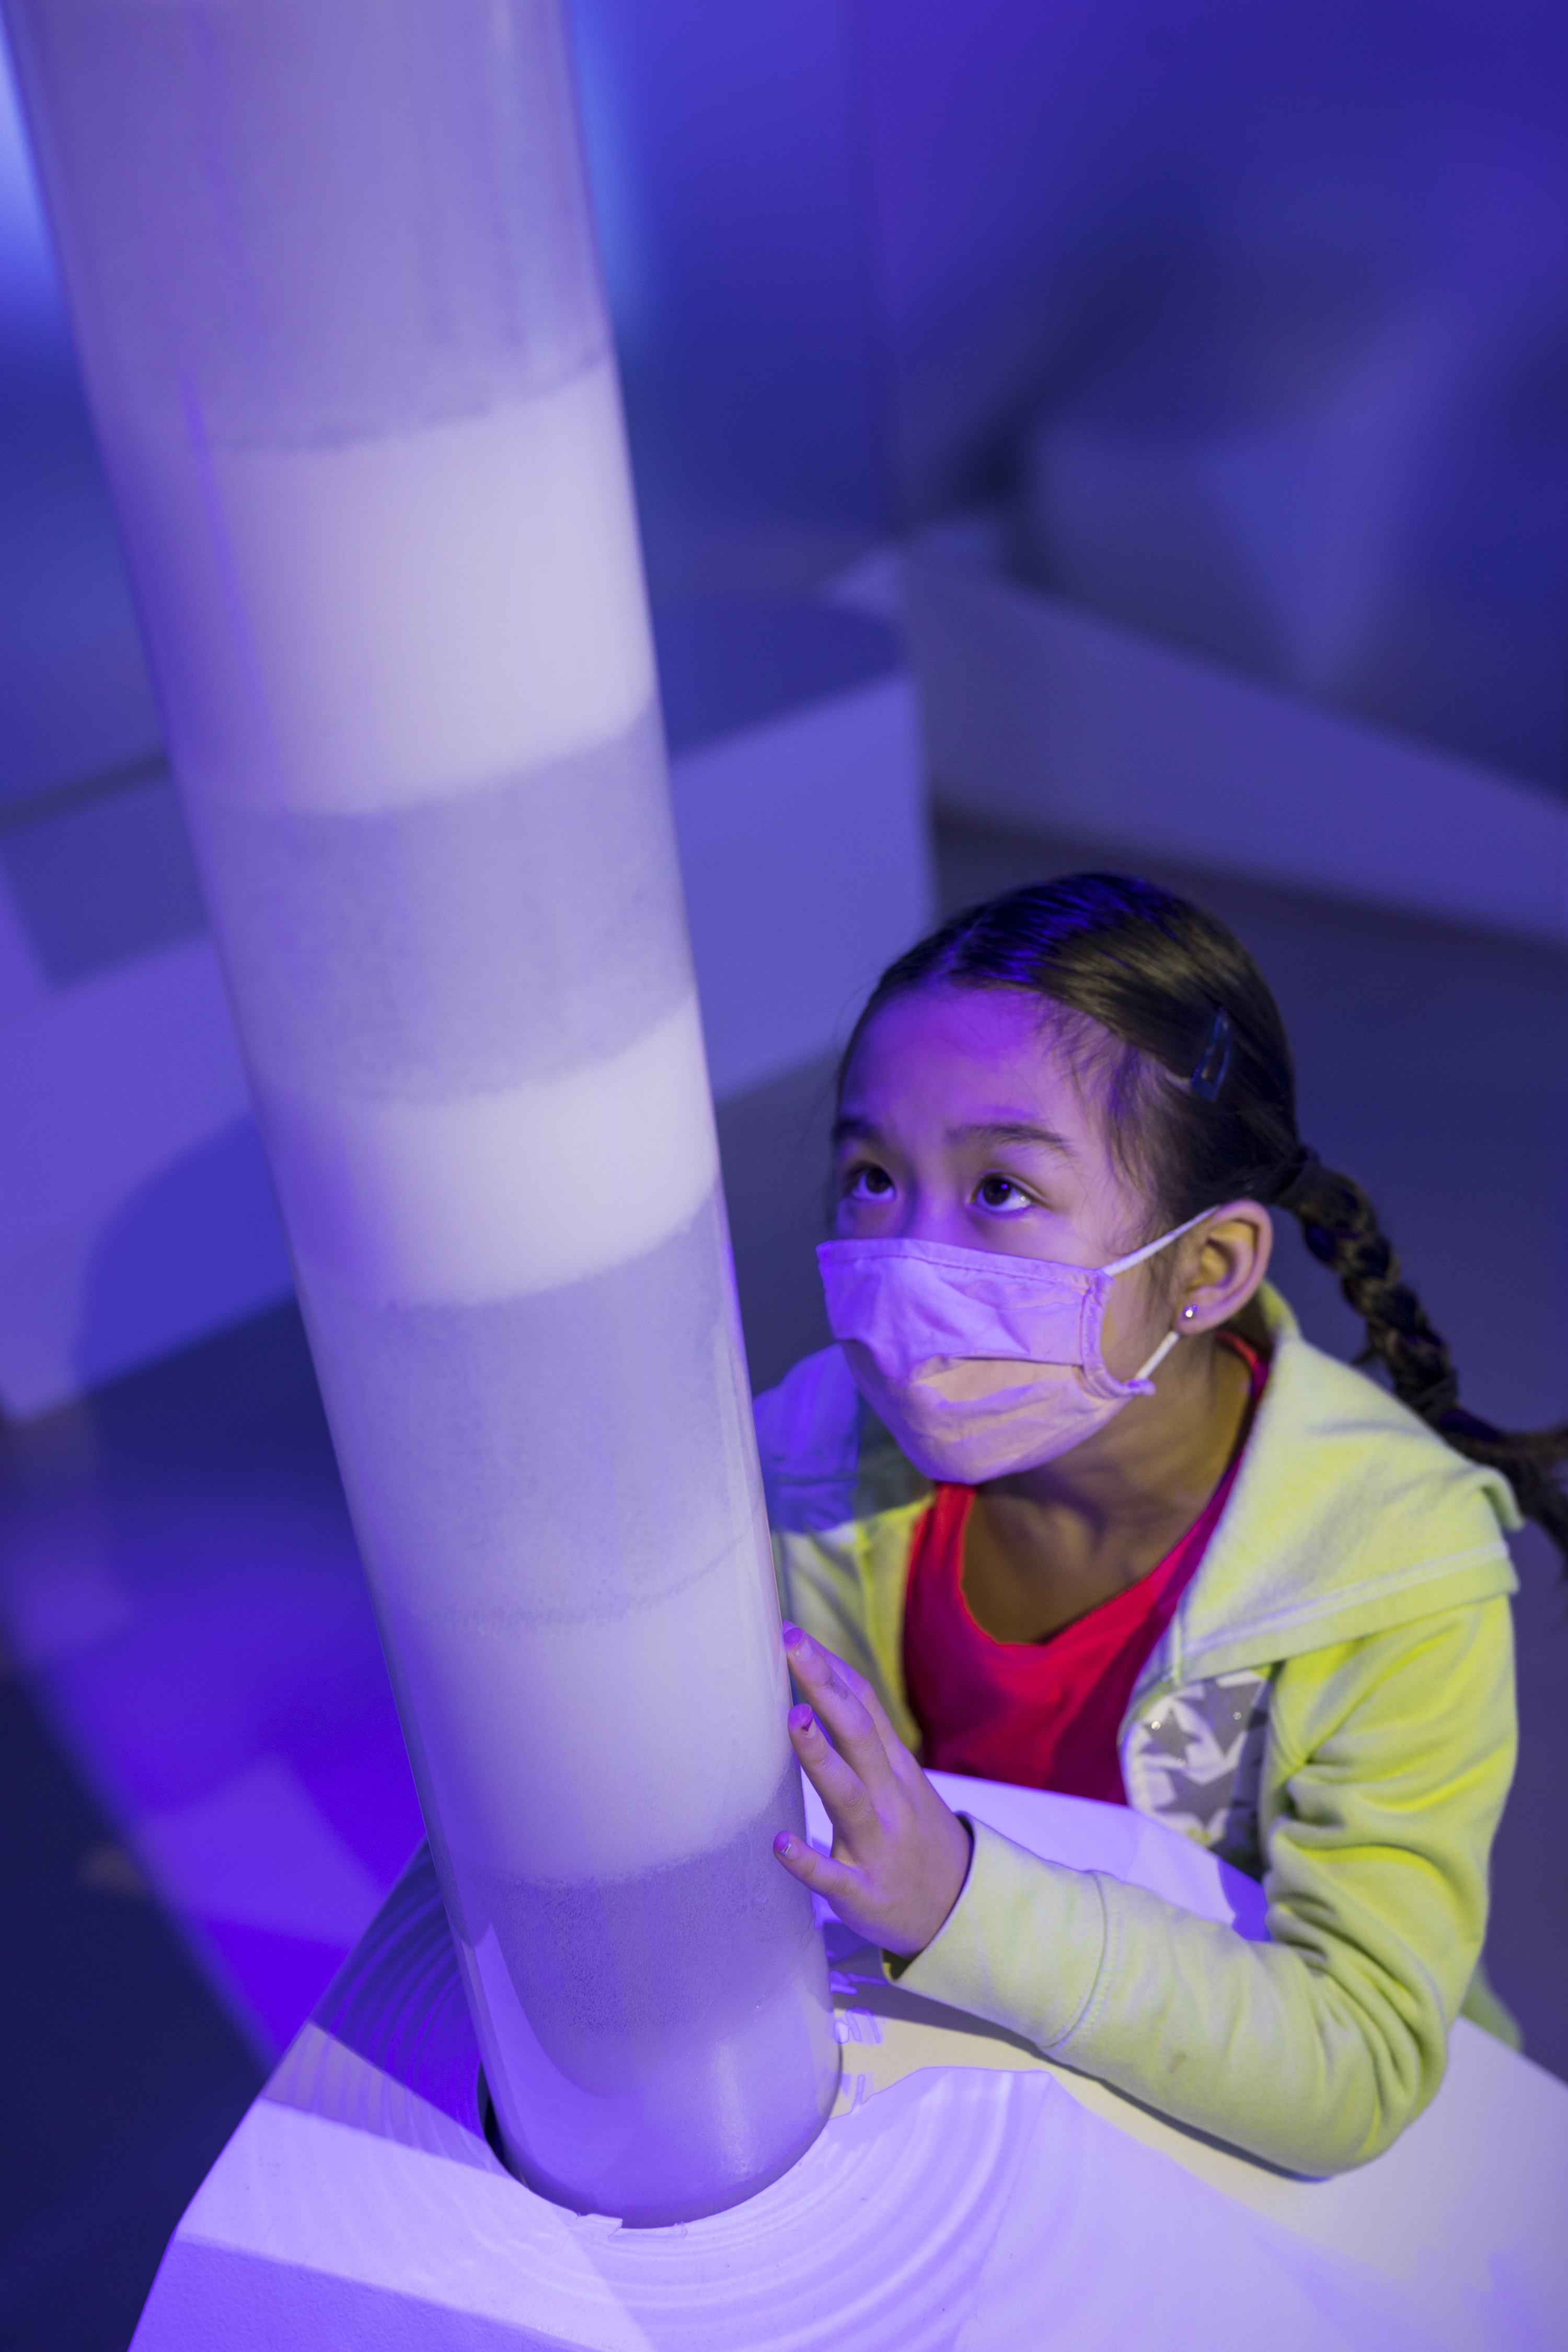 A child inspects a model of an ice core. (Credit: courtesy of © Nicolaus Czarnecki/Museum of Science)